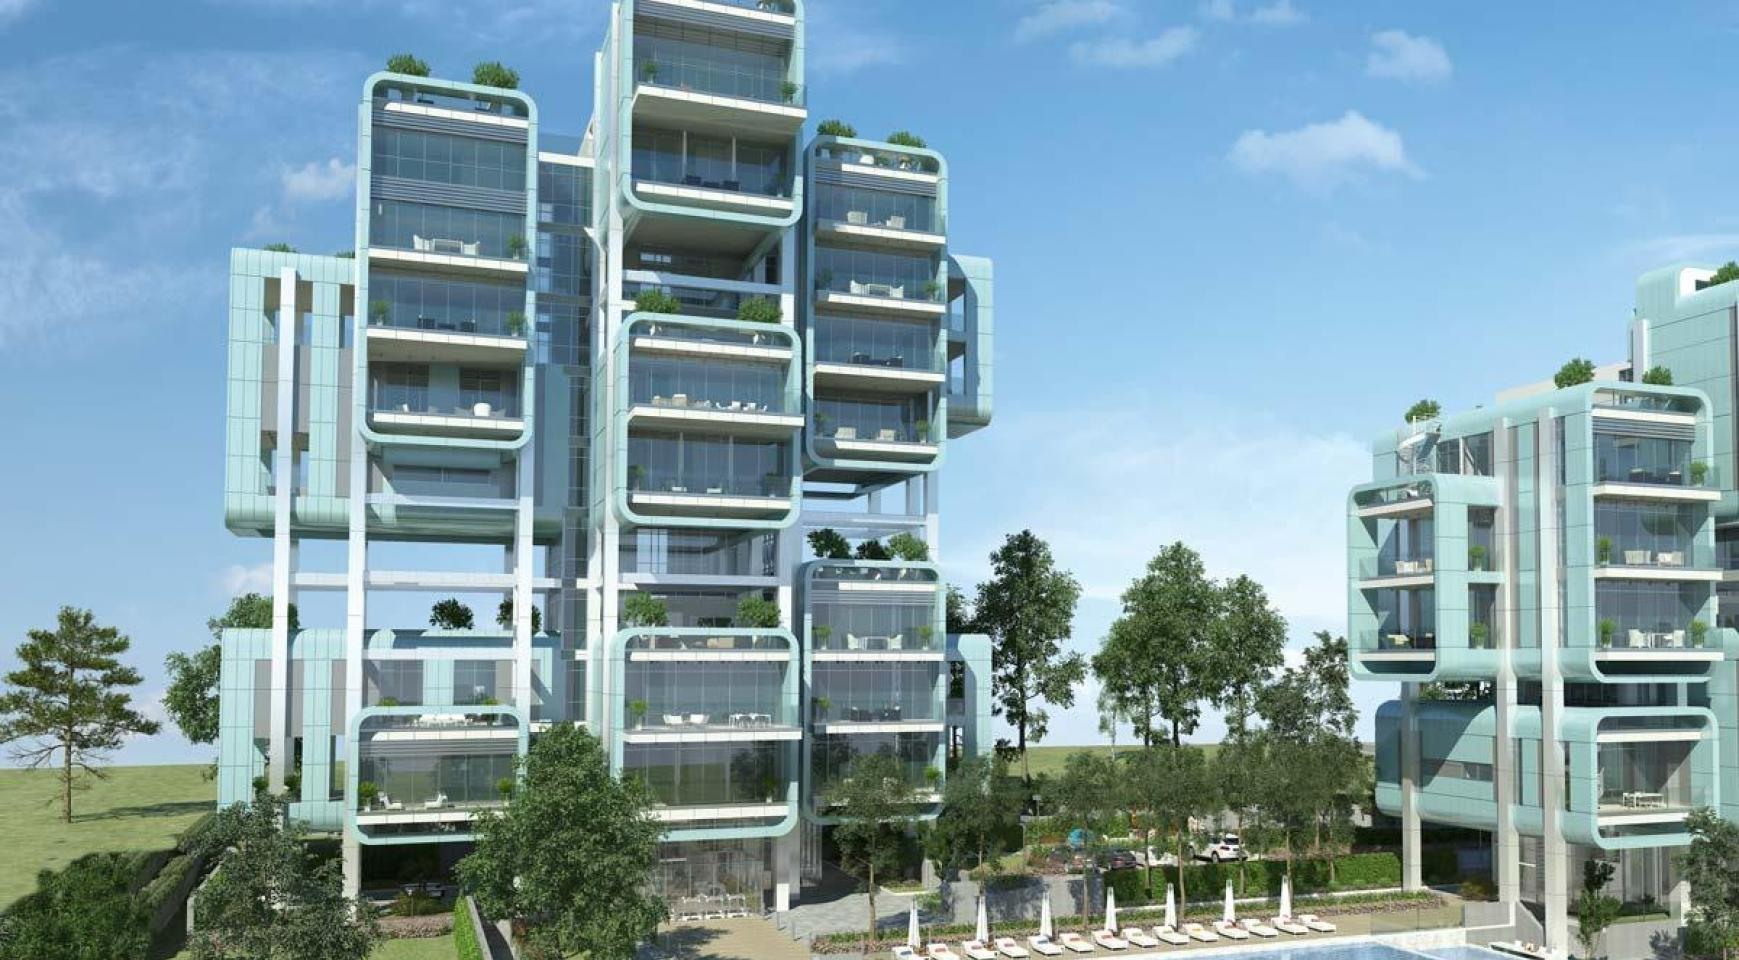 Elite 3 Bedroom Apartment with Roof Garden within a New Complex - 31